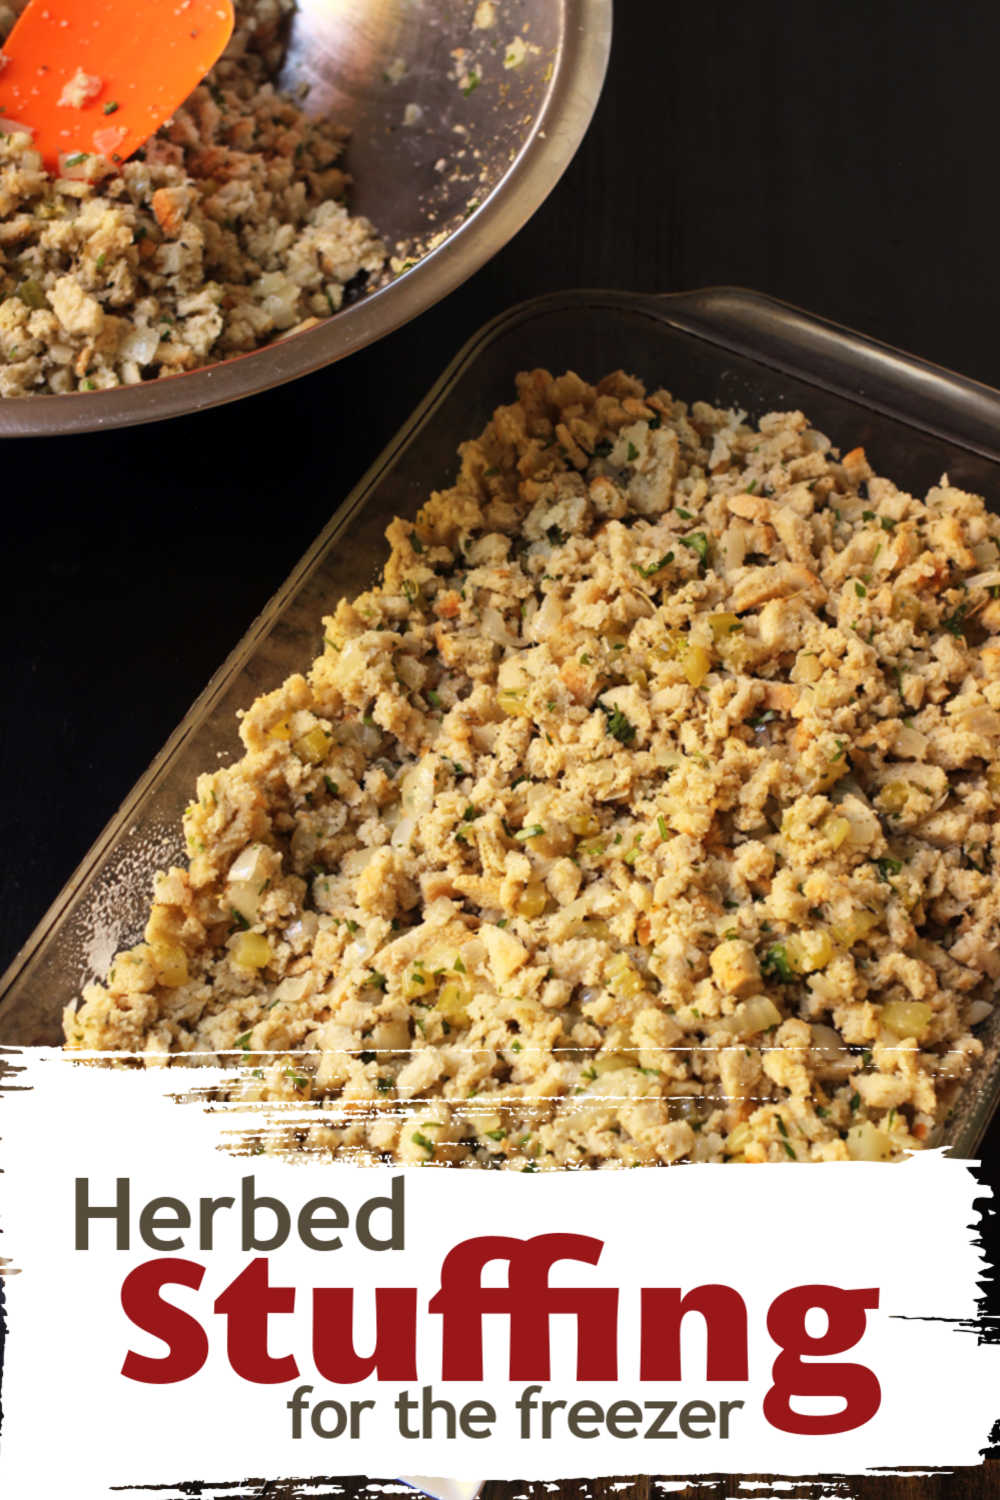 A baking dish filled with Stuffing